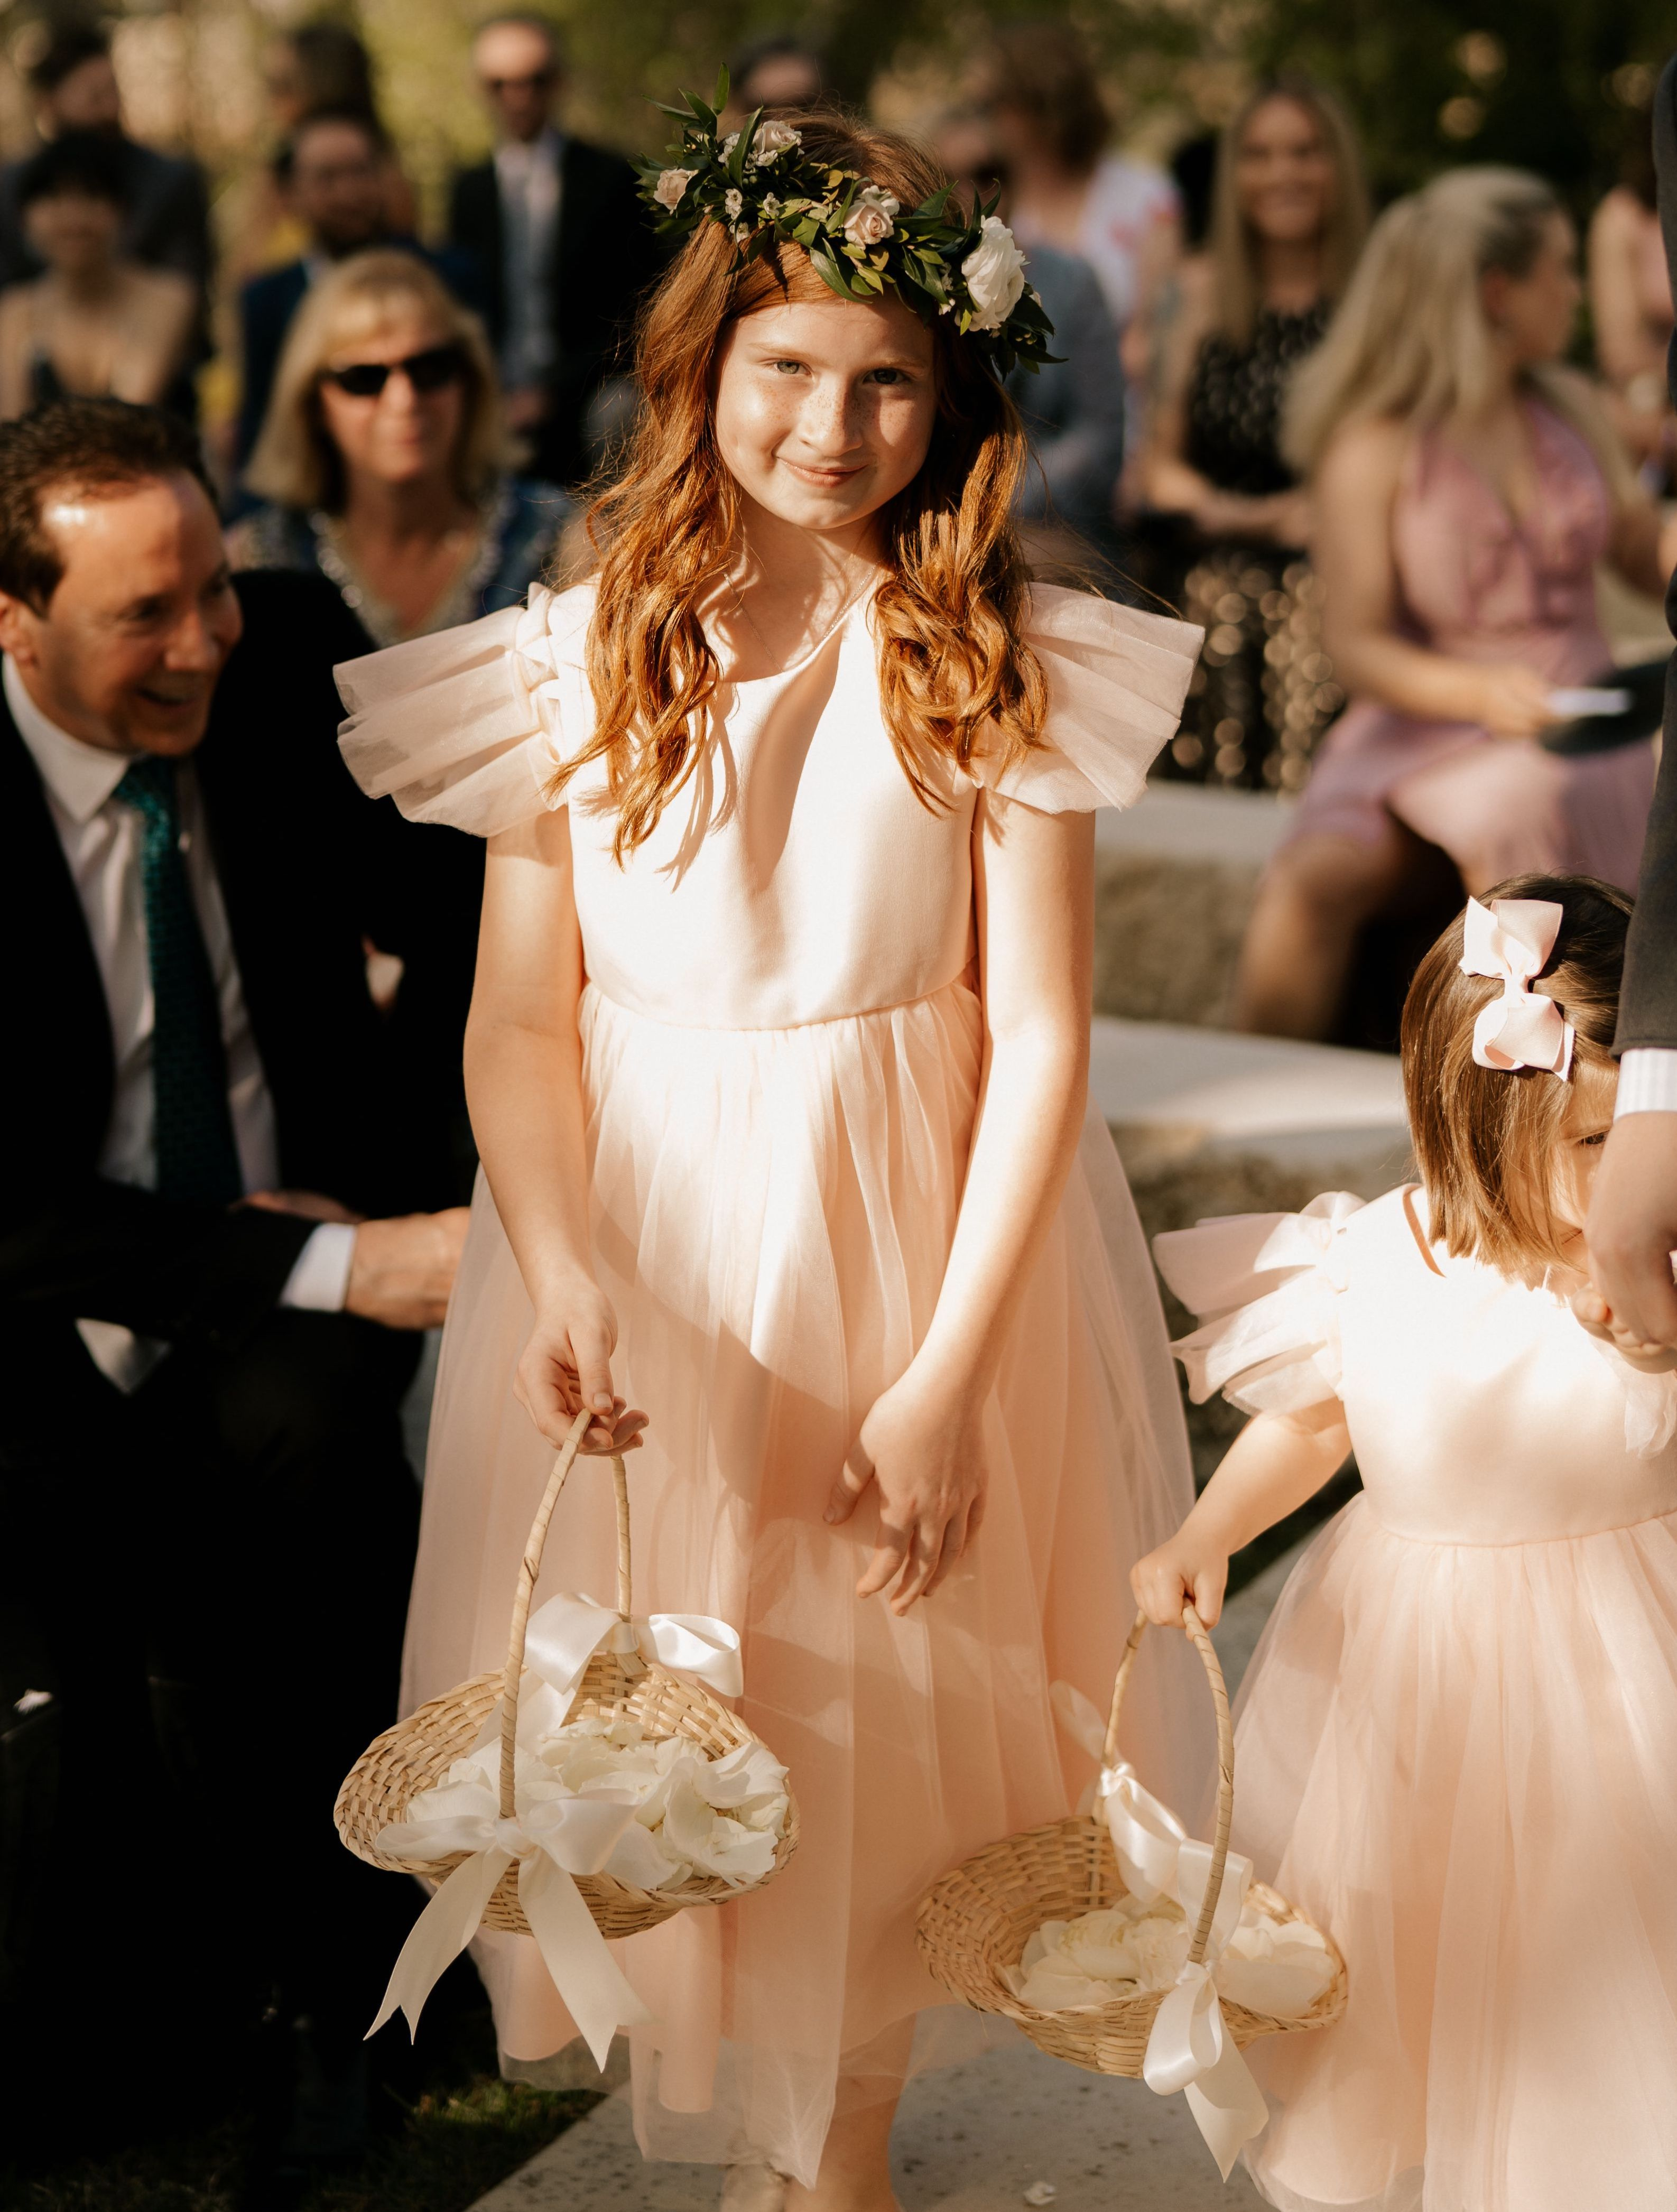 An adorable flower girl walks down the aisle wearing a floral crown and blush flowy dress.